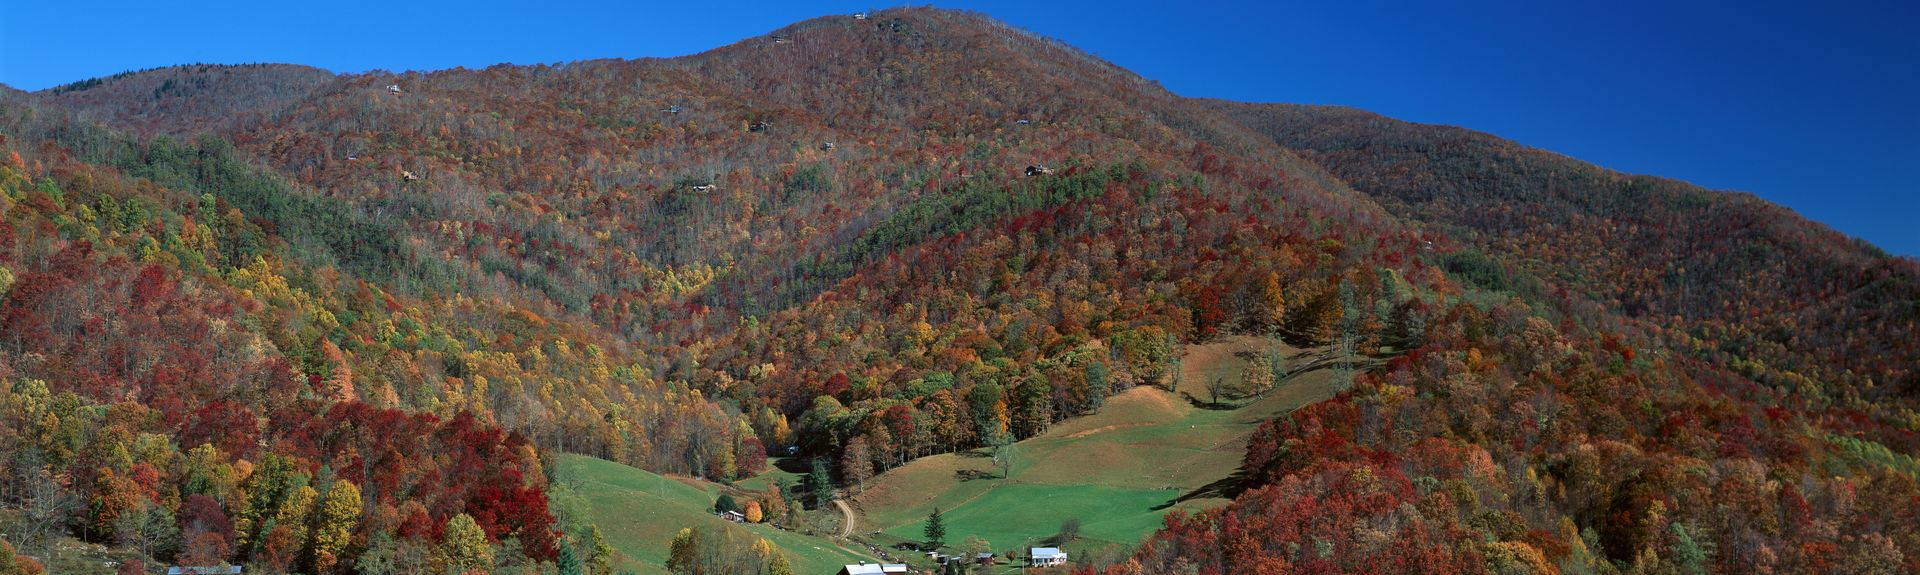 Maggie Valley, Carolina do Norte, Estados Unidos